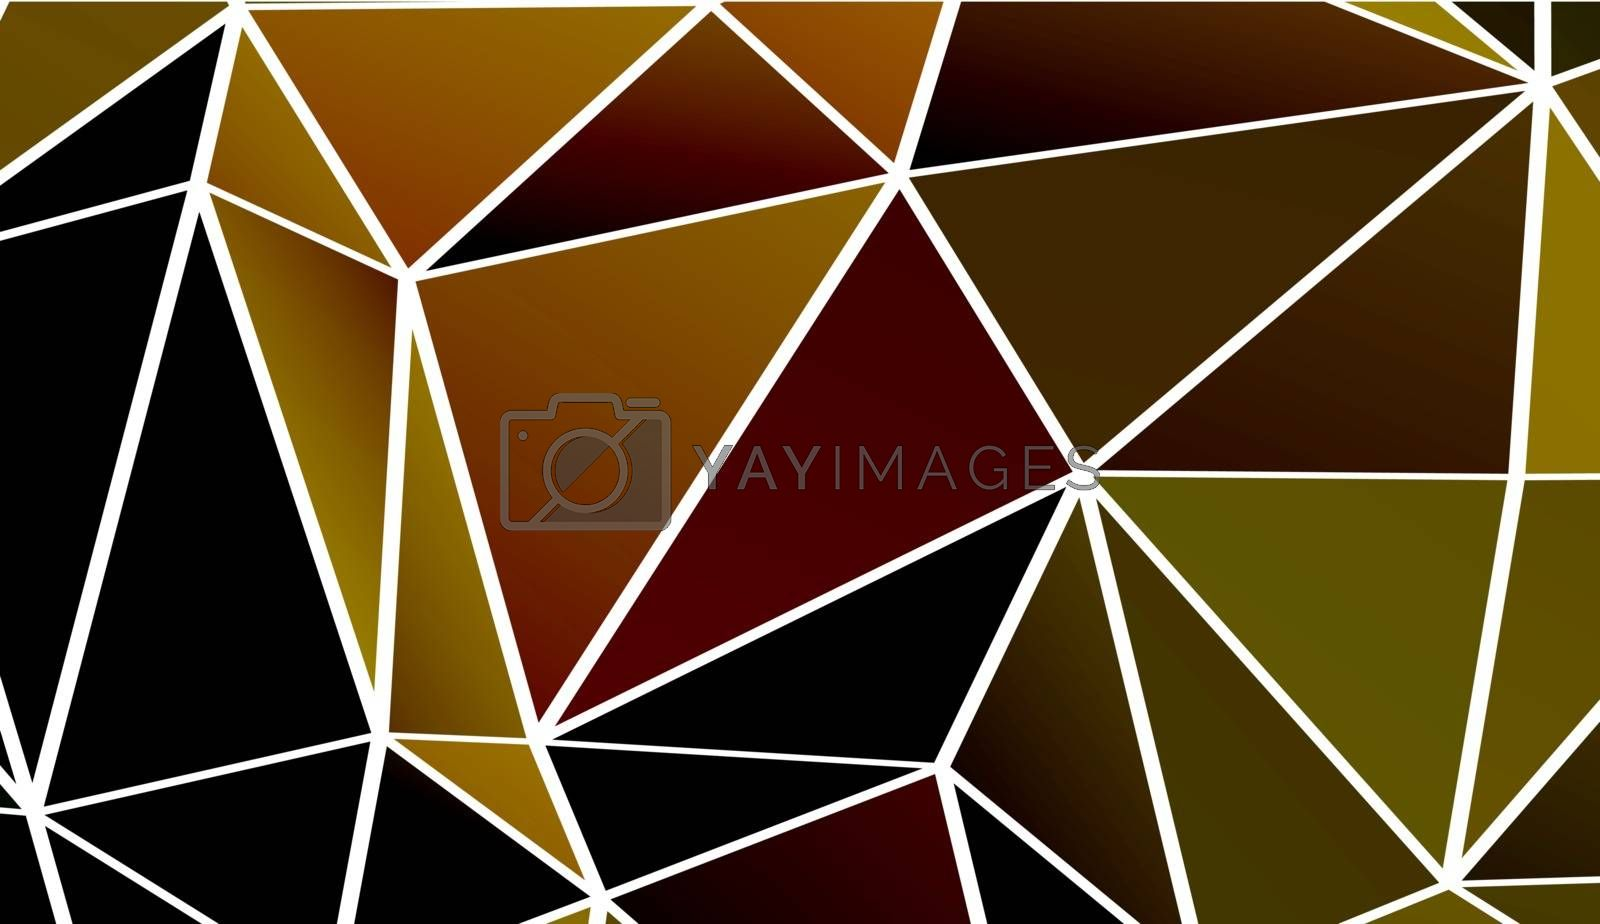 Abstract background made out of dark polygons